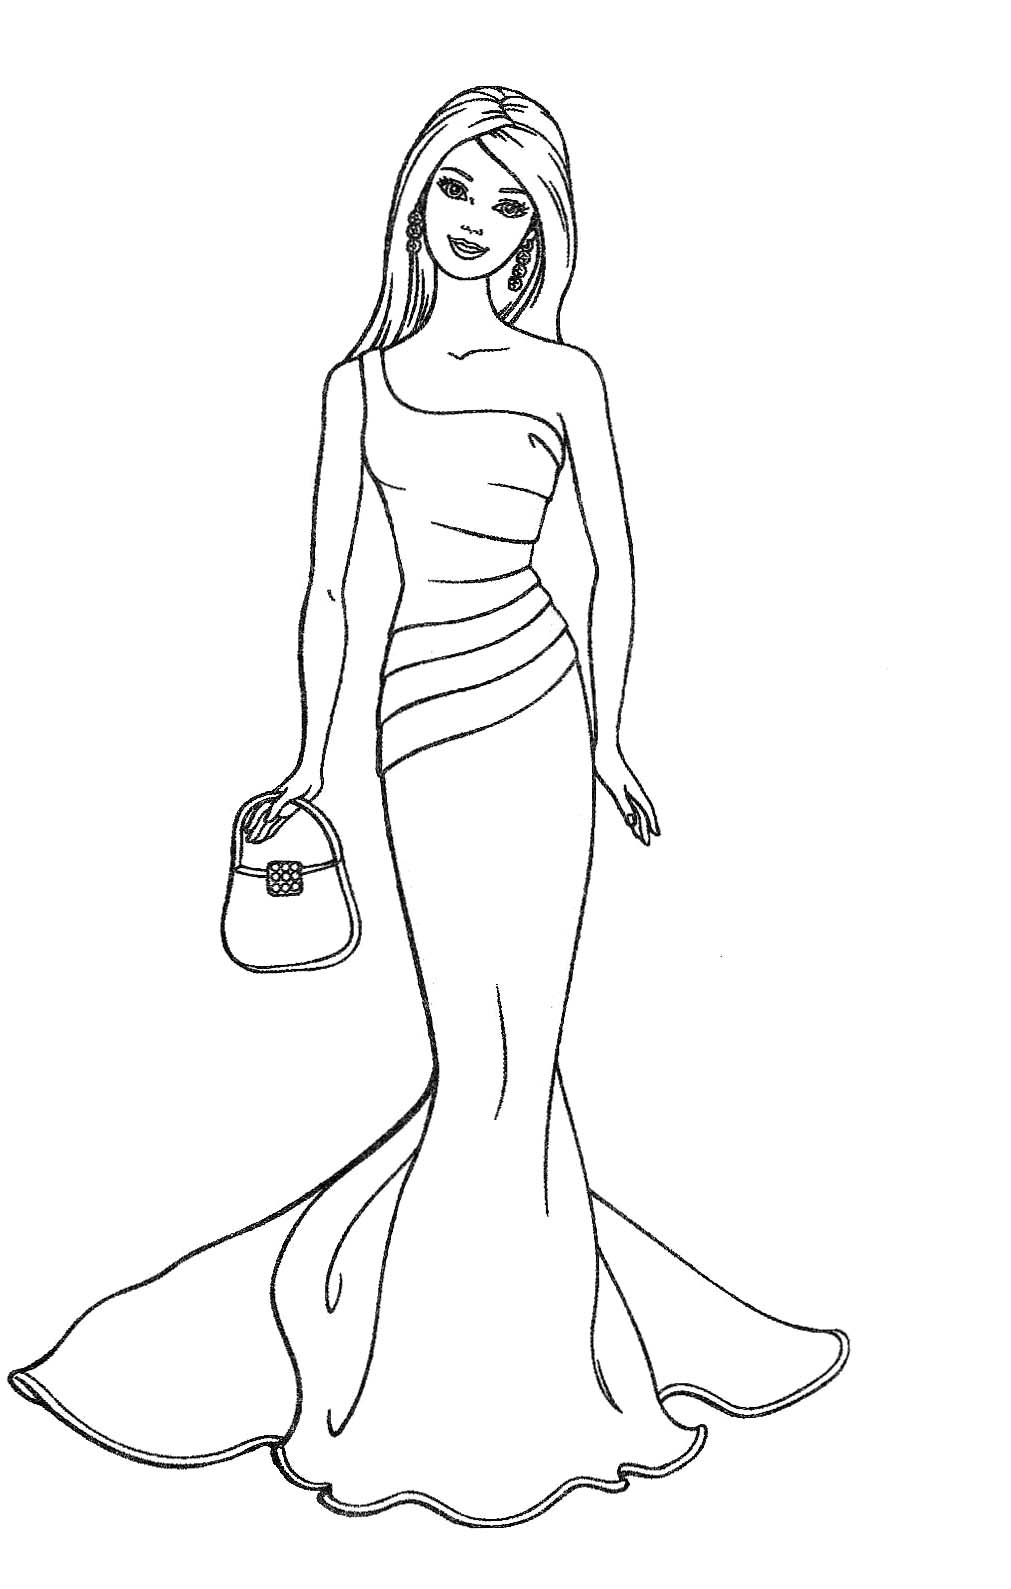 free fashion girl coloring pages - photo#36